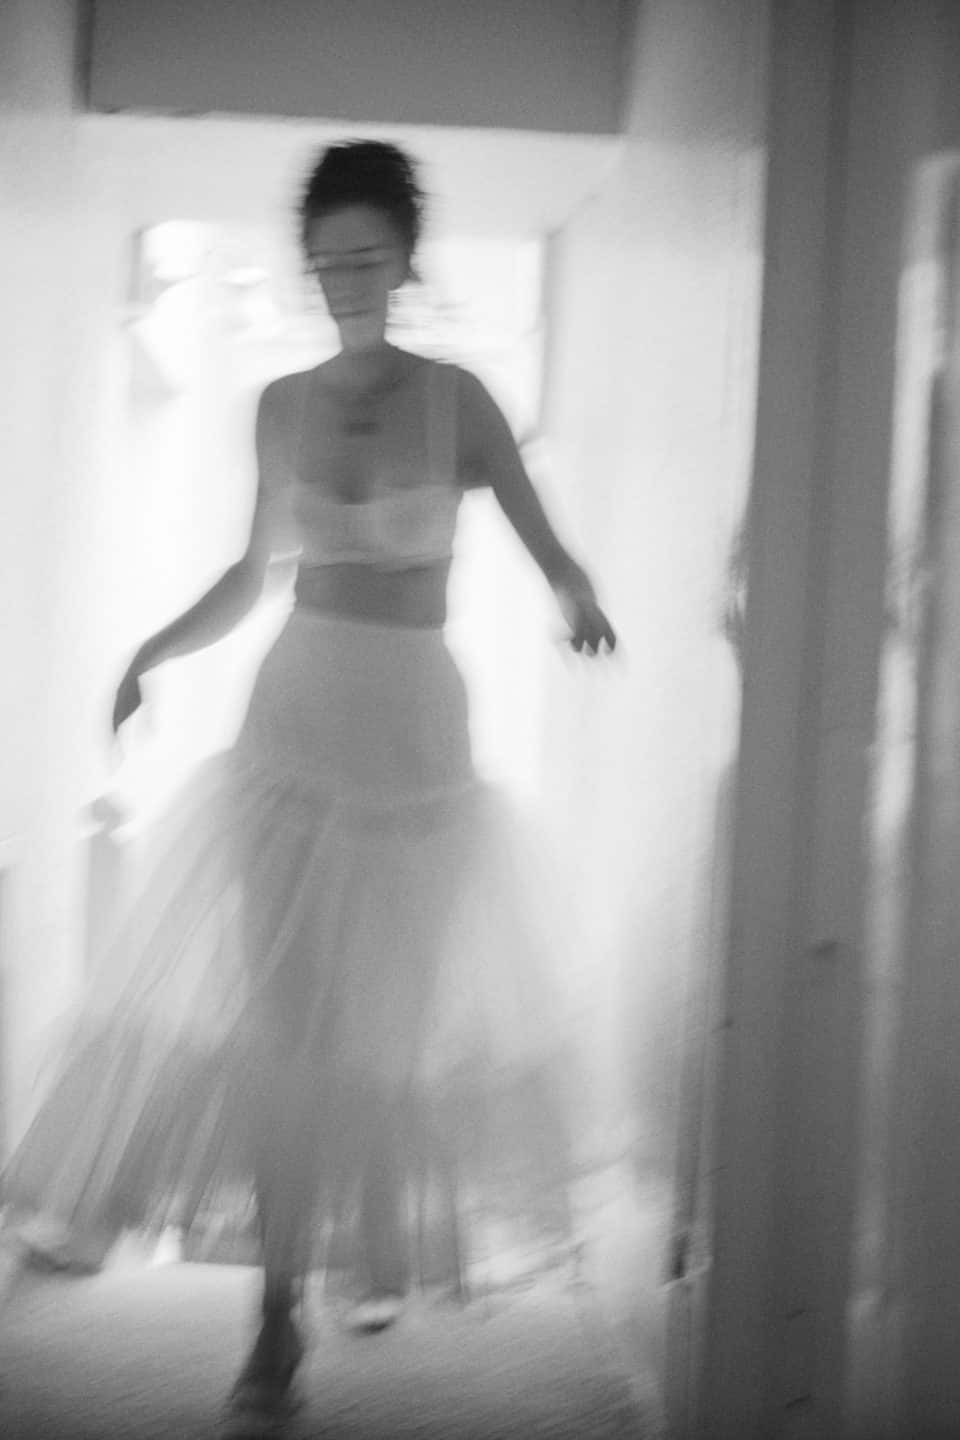 John Dolan's Photographs Capture the Art and Soul of a Wedding Day